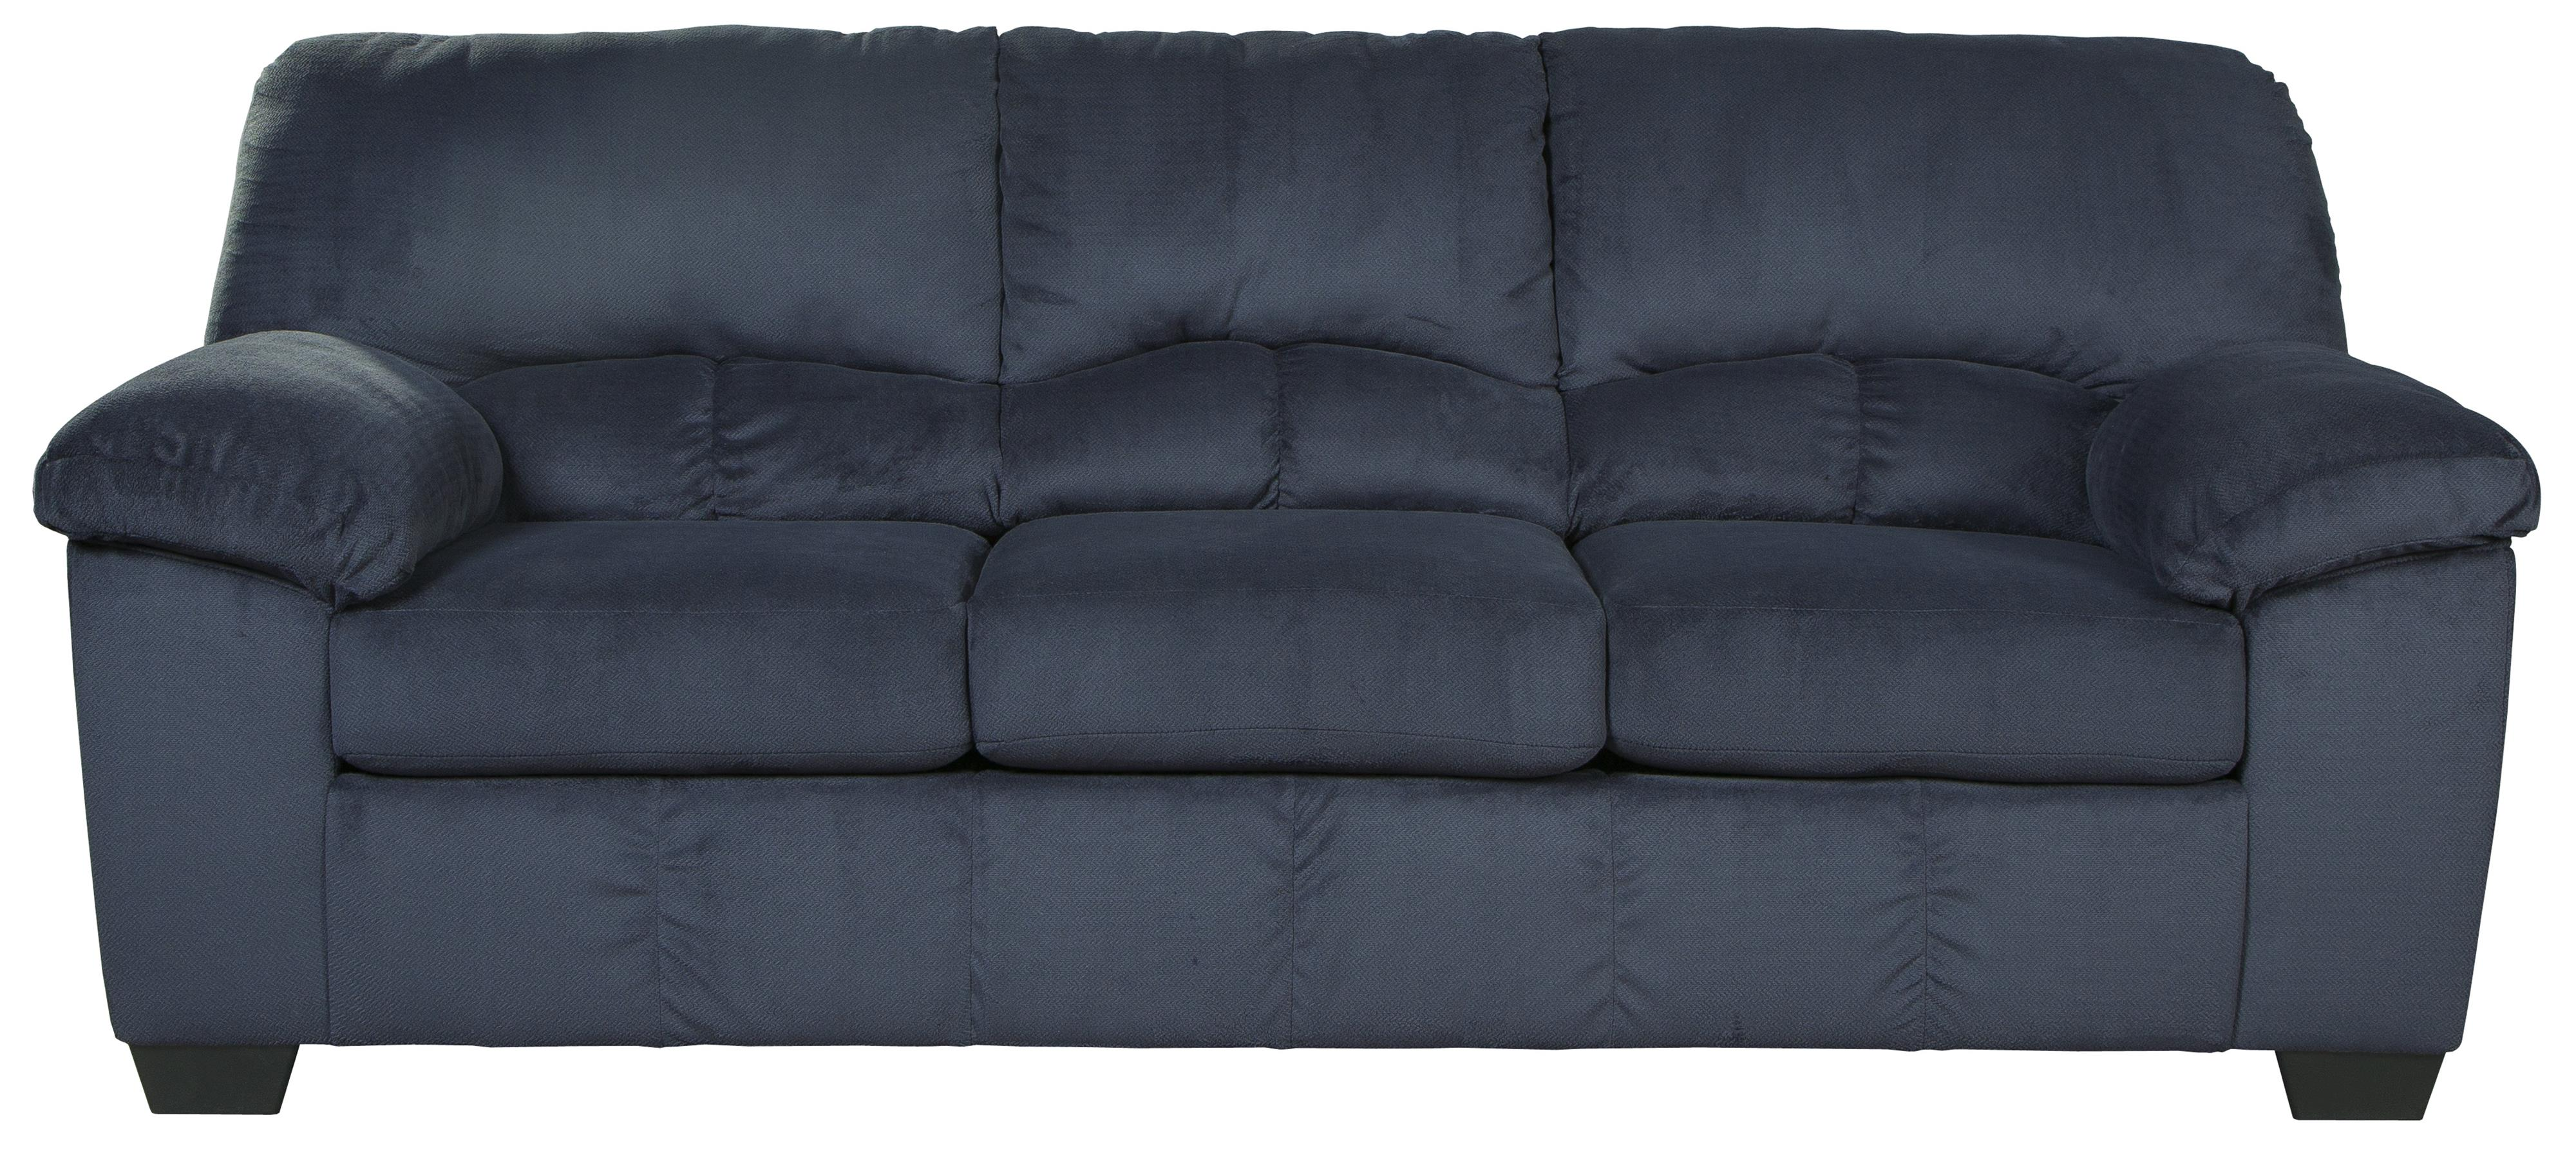 Signature Design by Ashley Dailey Sofa - Item Number: 9540238